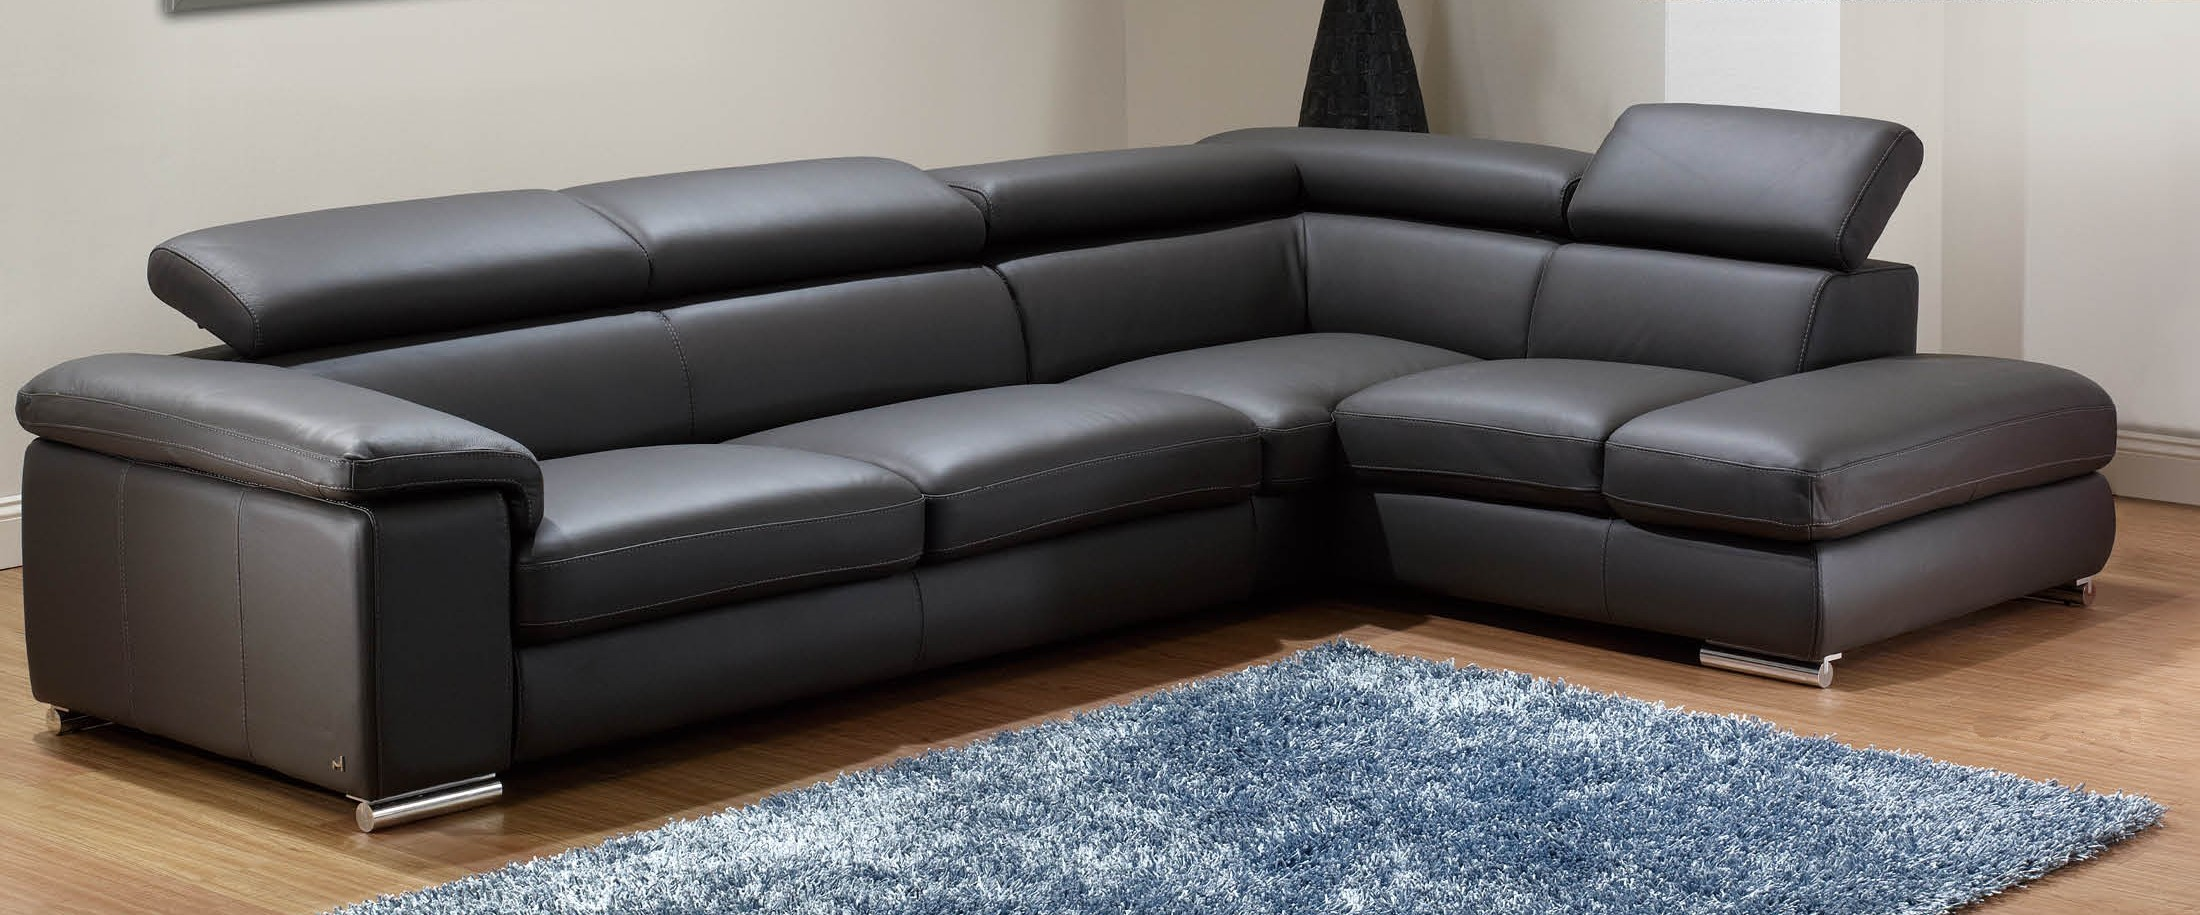 Best black leather sectional for elegant living room design with black leather sectional sofa